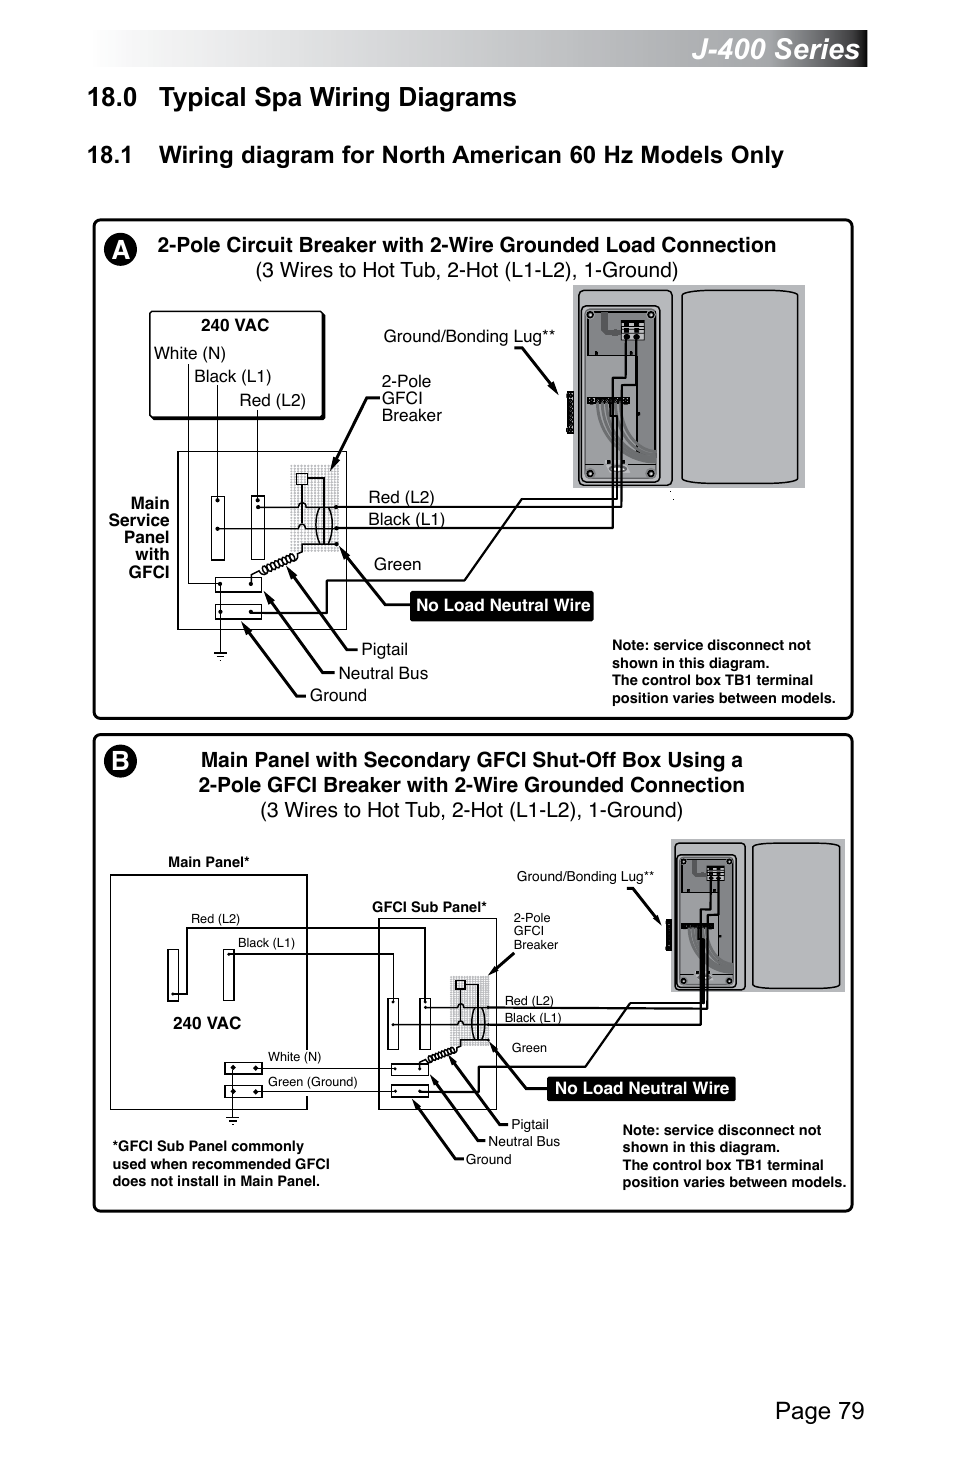 jacuzzi j 470 page85 0 typical spa wiring diagrams, j 400 series, page 79 jacuzzi j spa wiring diagram at mifinder.co